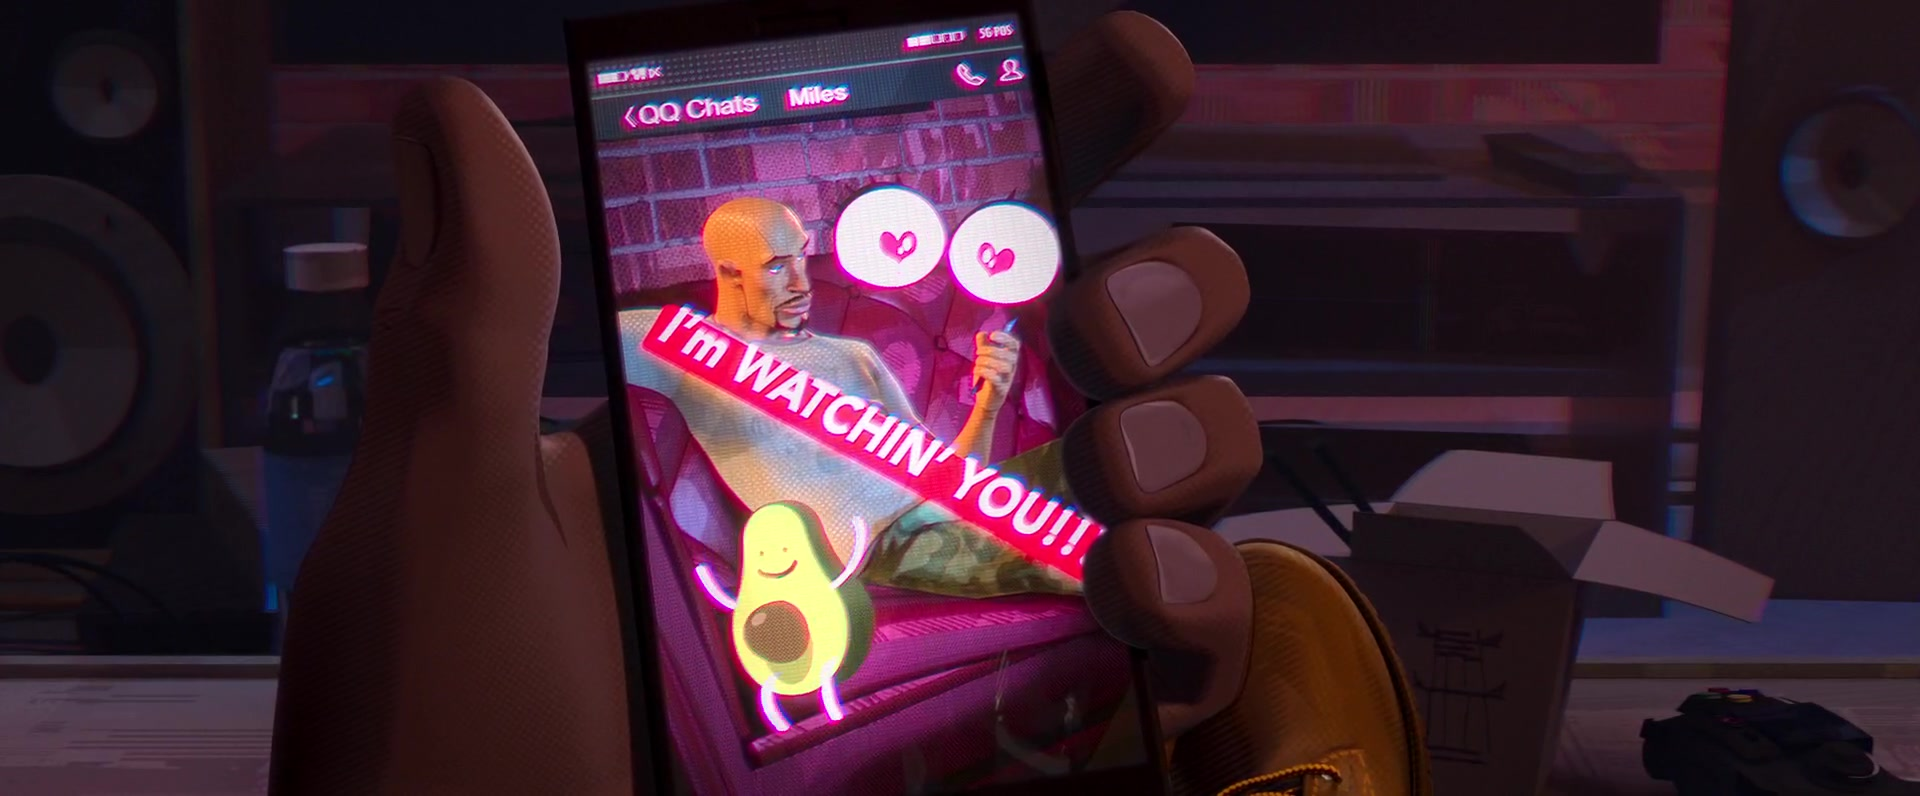 Tencent QQ Messenger in Spider-Man: Into the Spider-Verse (2018